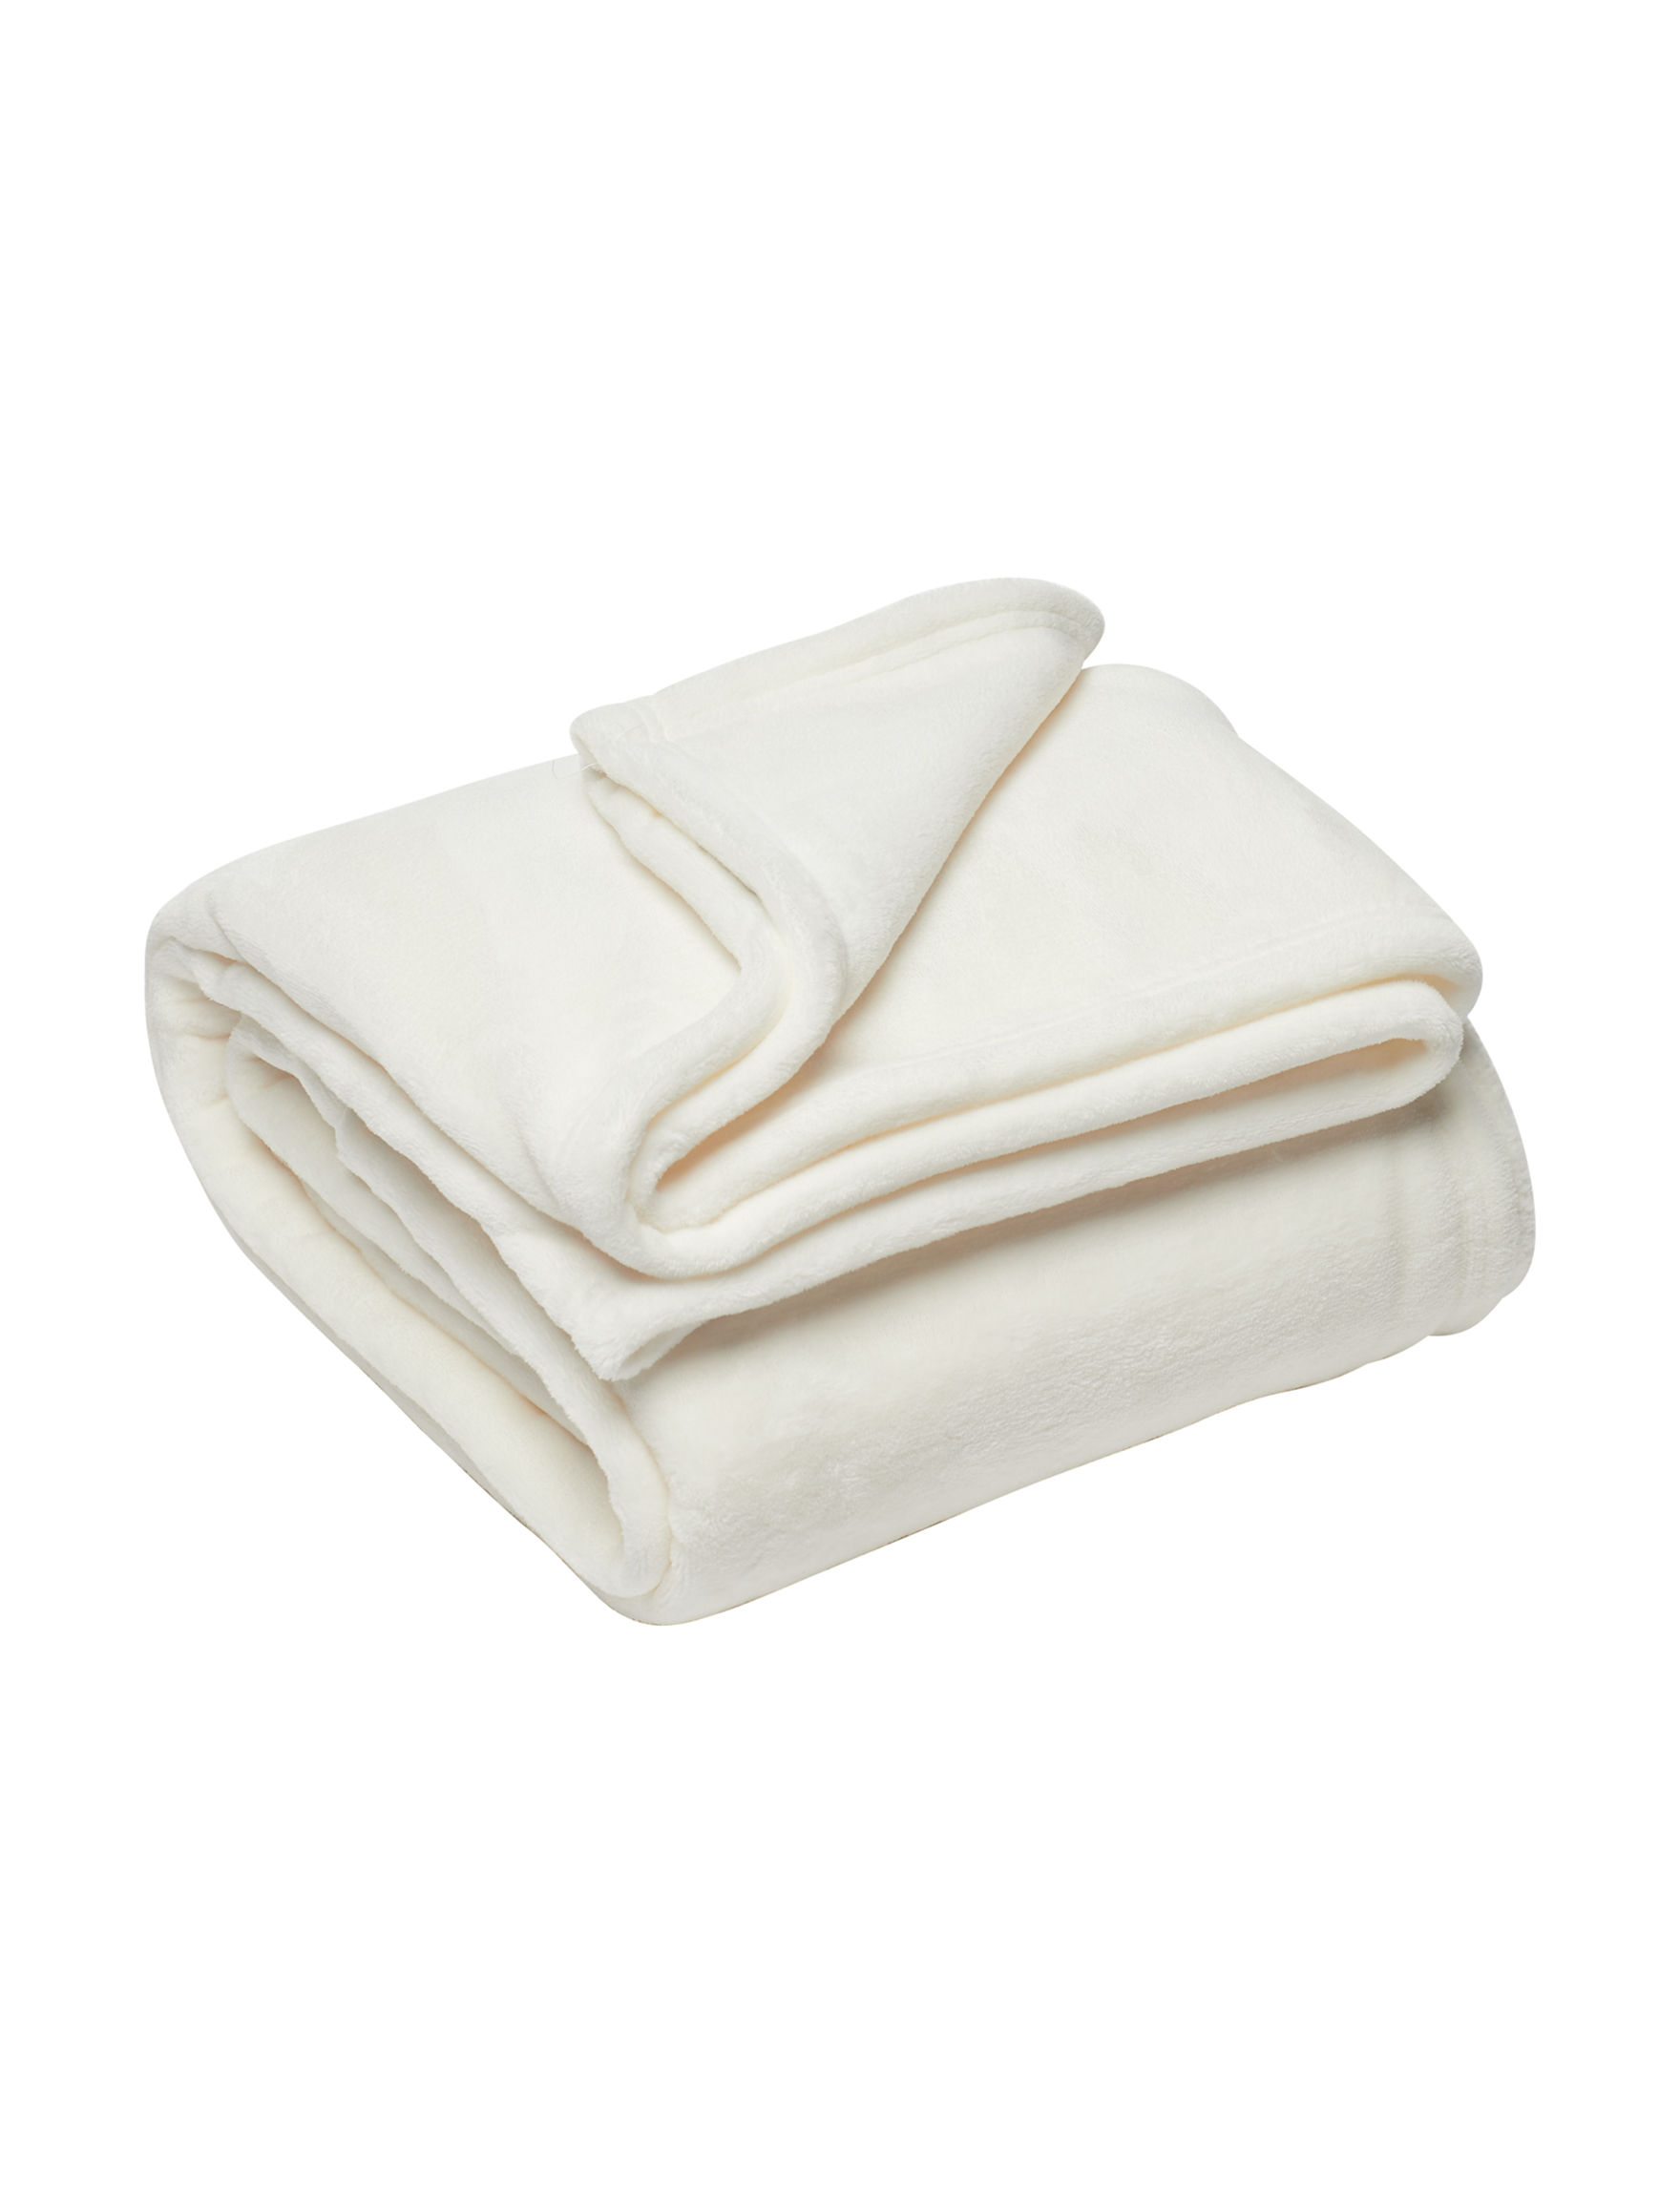 Celebrity Home Ivory Blankets & Throws